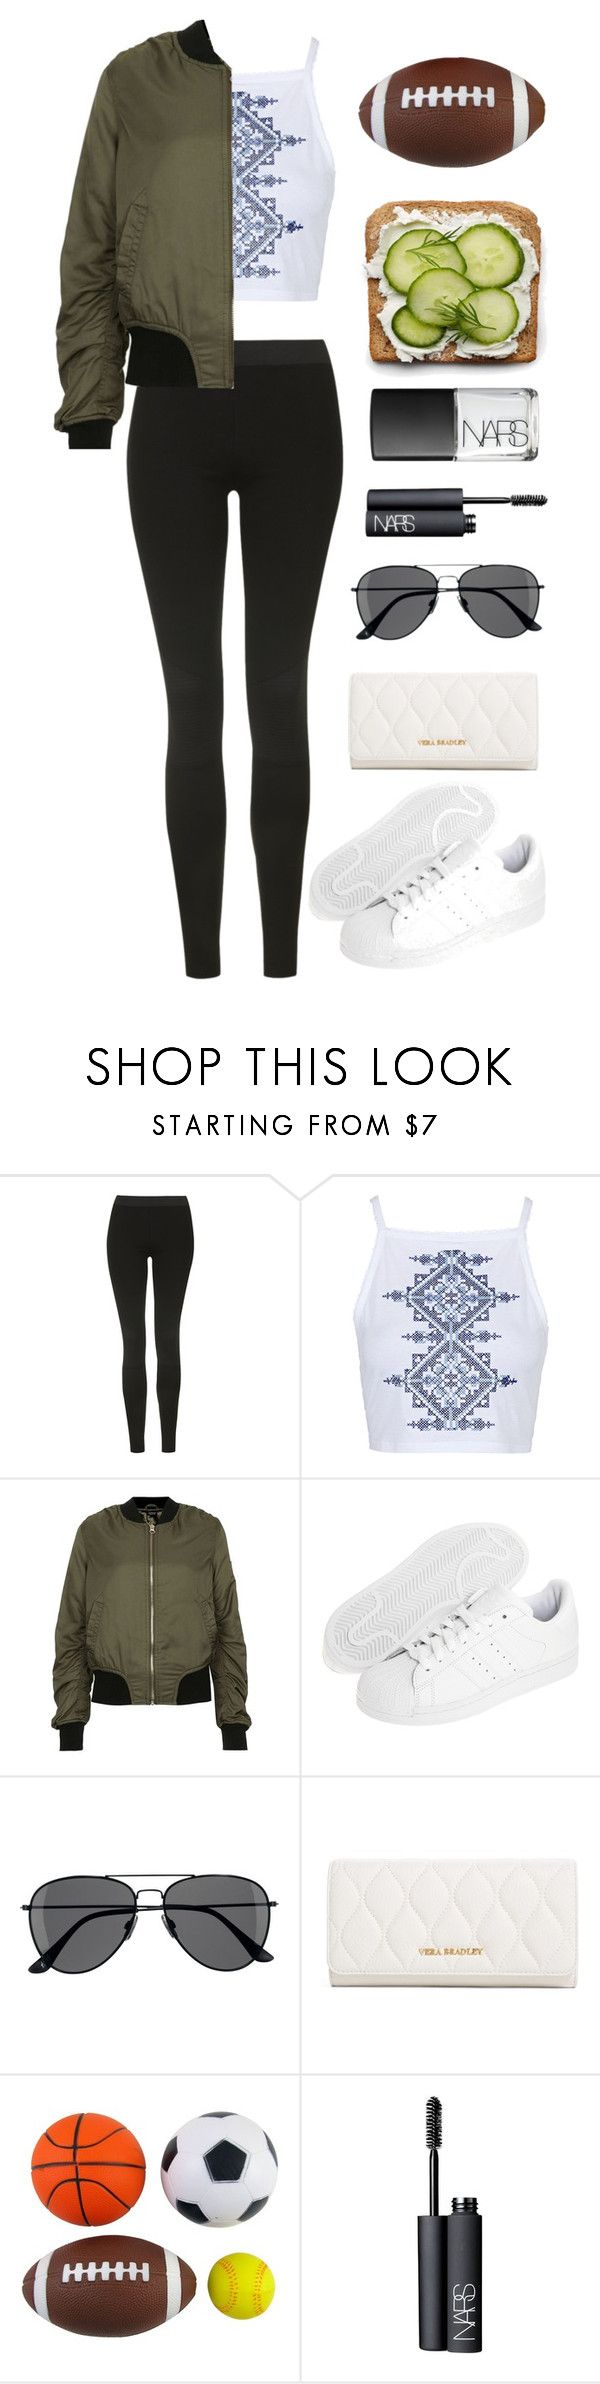 """""""Outfit for football game"""" by yingtango ❤ liked on Polyvore featuring Topshop, adidas Originals, H&M, Vera Bradley and NARS Cosmetics"""